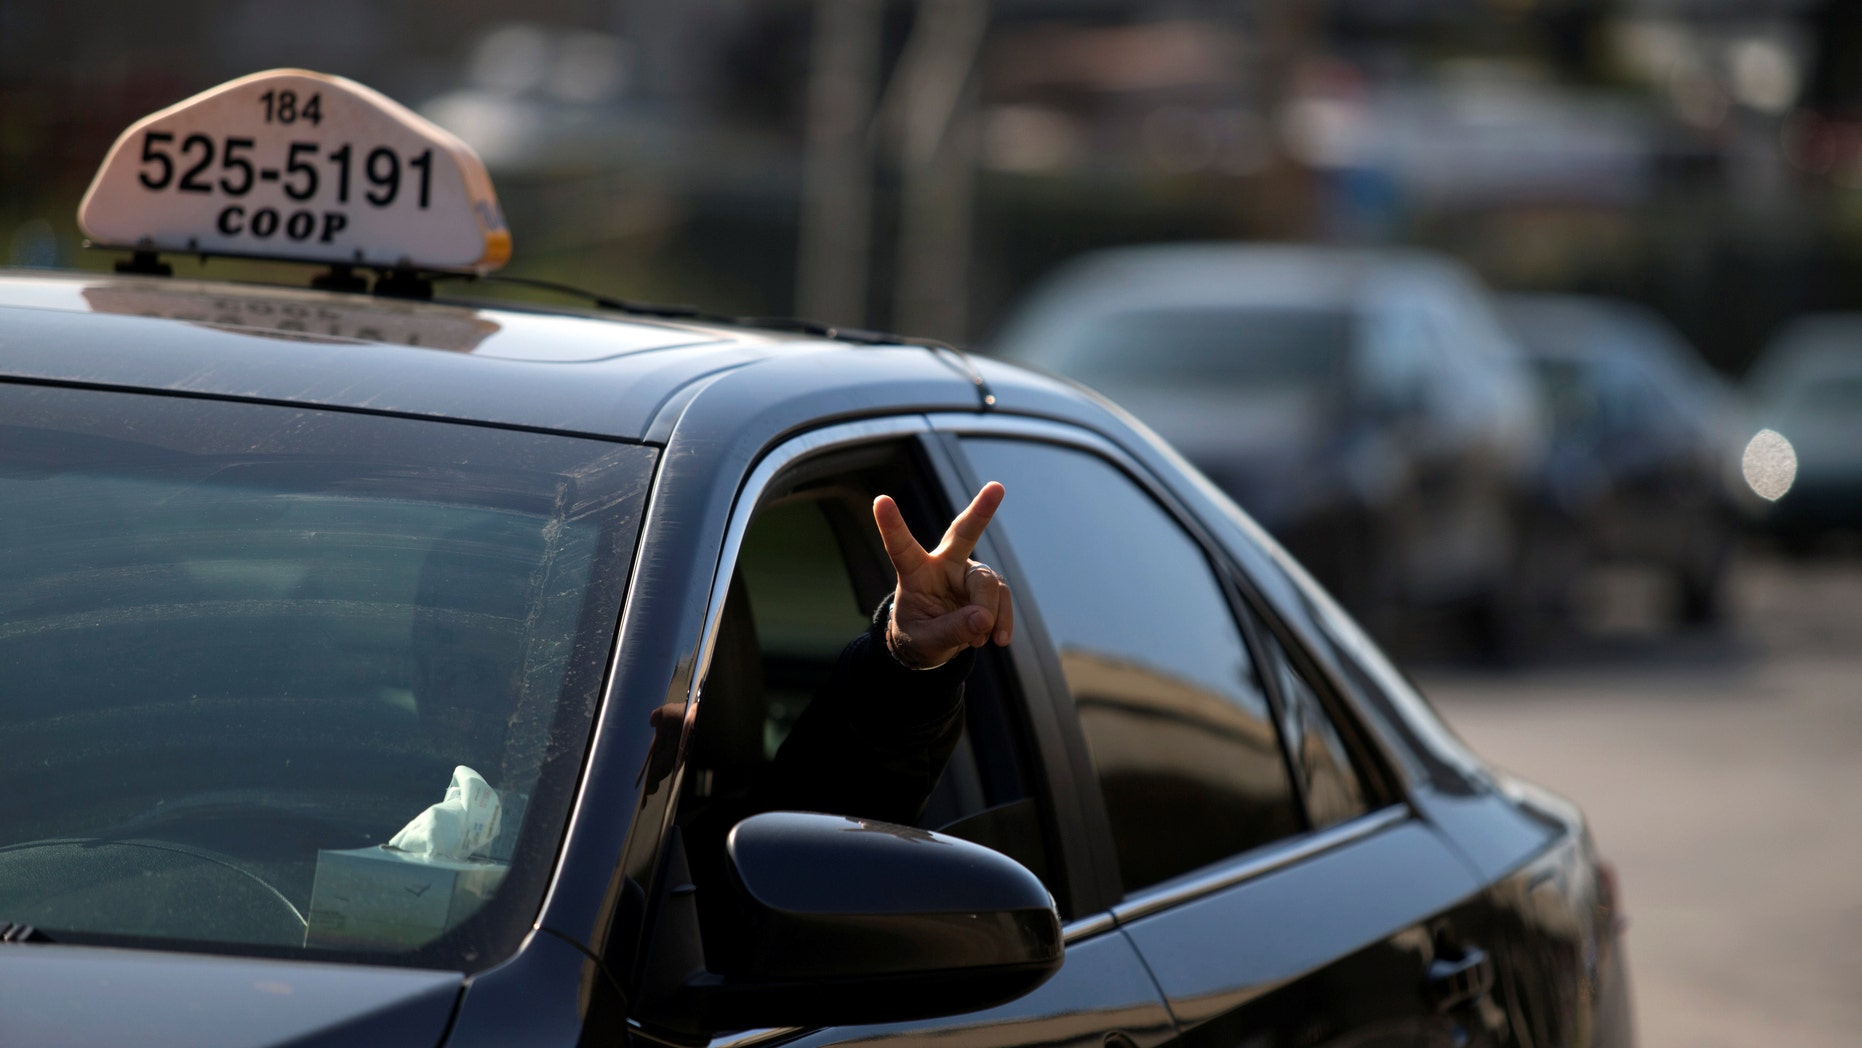 File photo - A taxi driver flashes a peace sign as he and other taxi drivers begin their protest against Uber in Montreal, Canada Oct. 5, 2016. (REUTERS/Christinne Muschi)